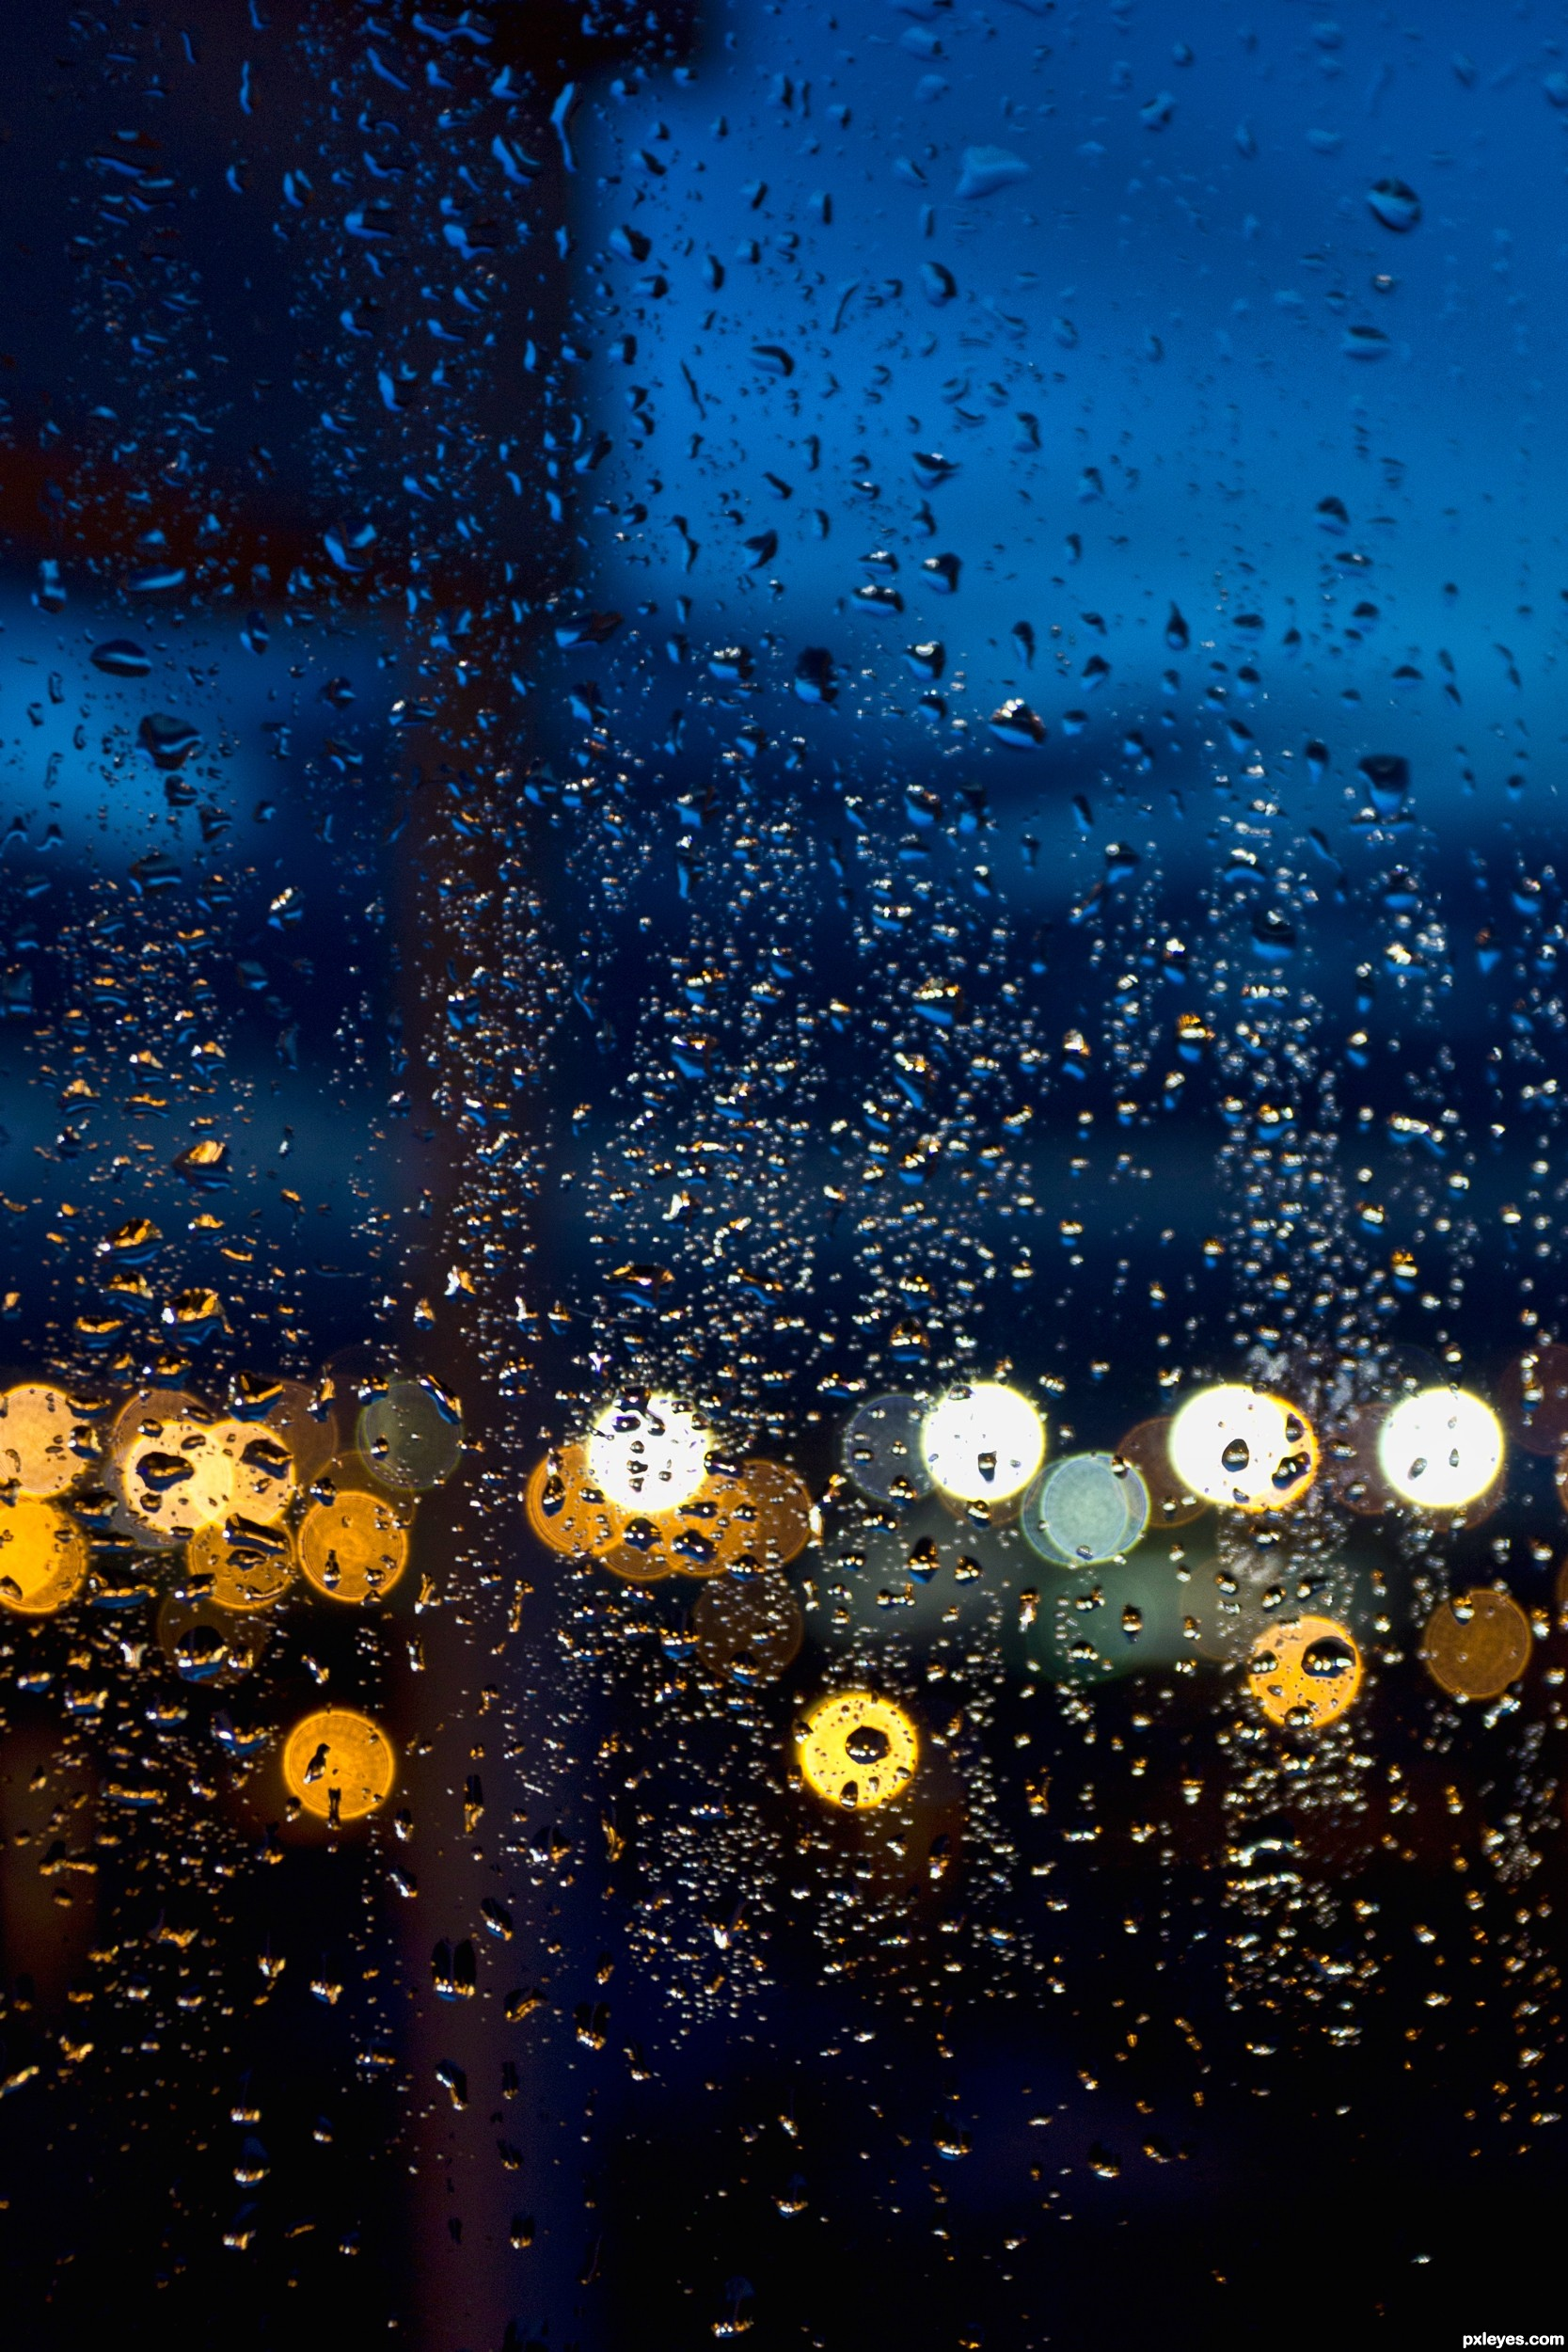 Evening rain picture, by friiskiwi for: window drops ...